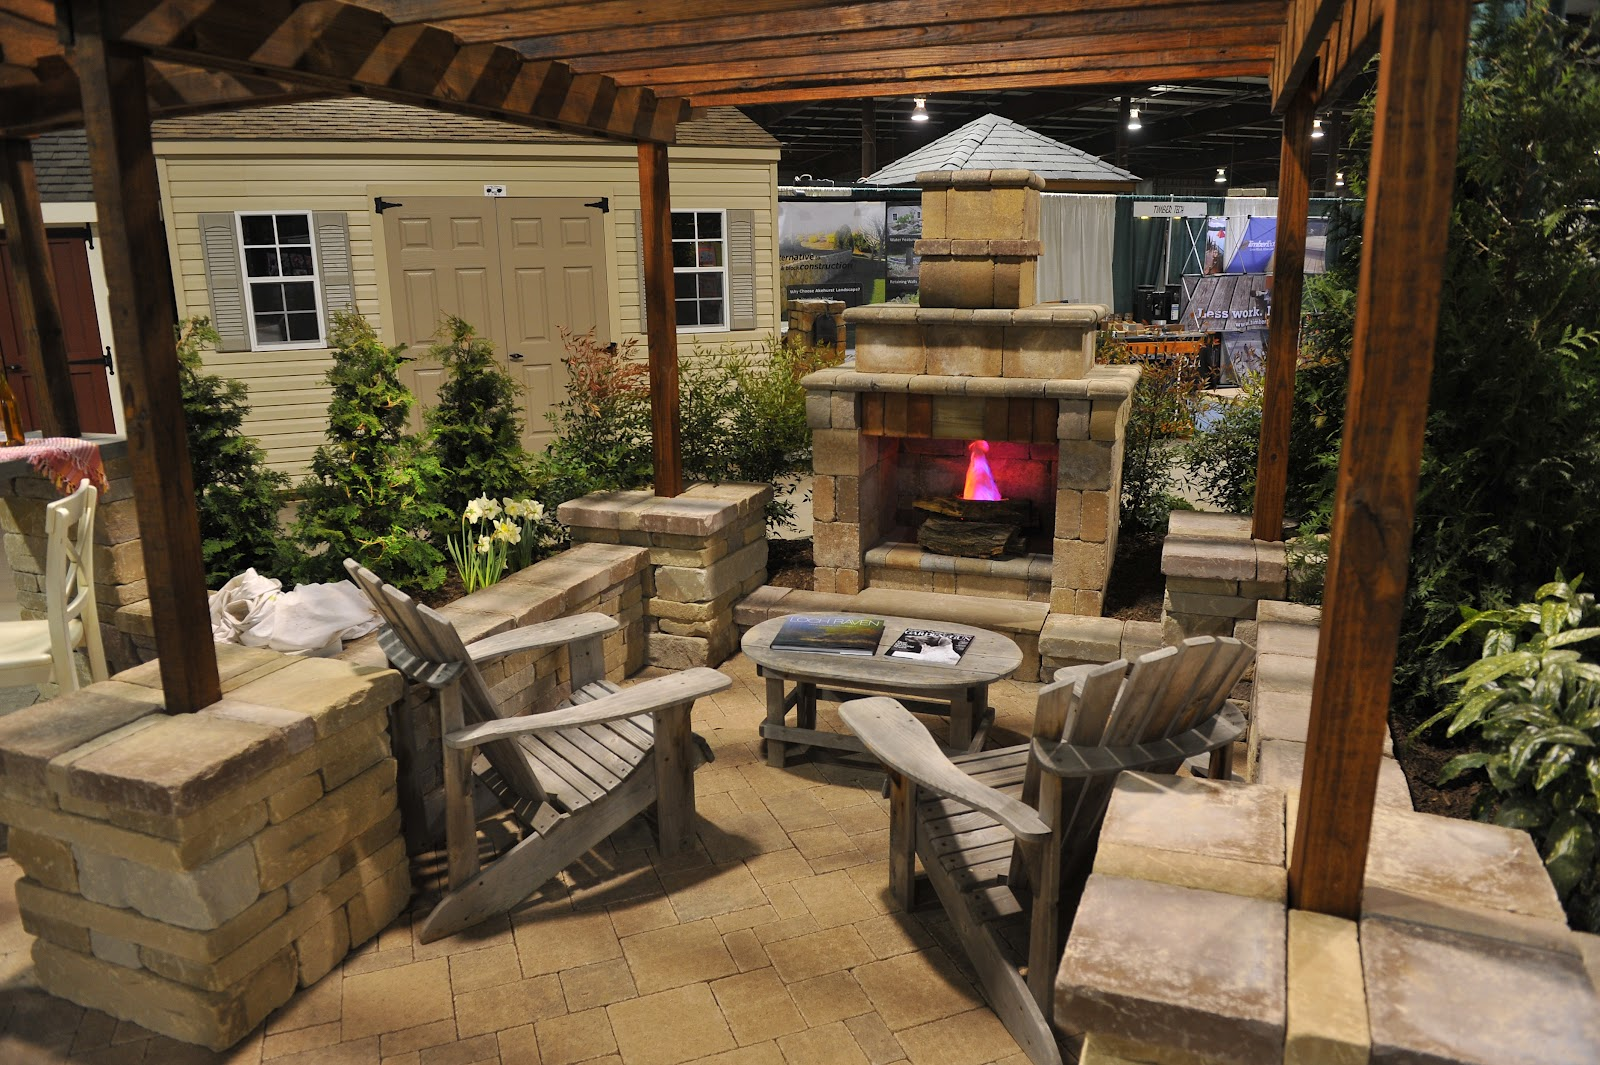 Garden Design With Backyard Entertainment Ideas Photo Your Home Remodel From Homeemoney